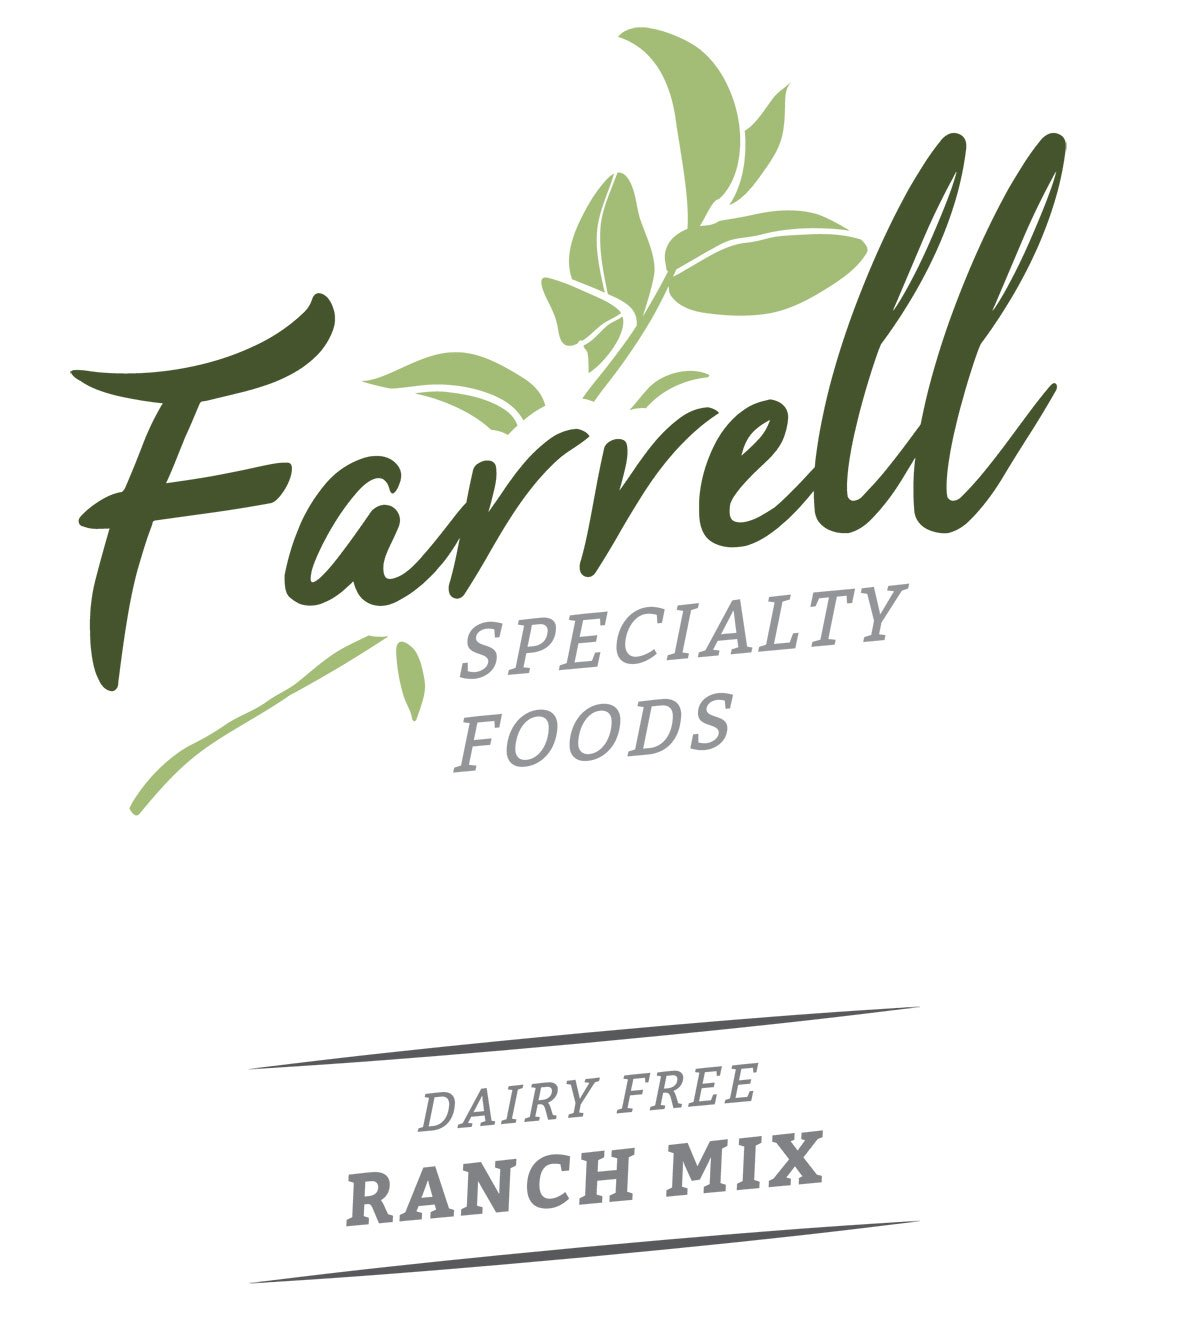 Dairy Free Ranch Mix